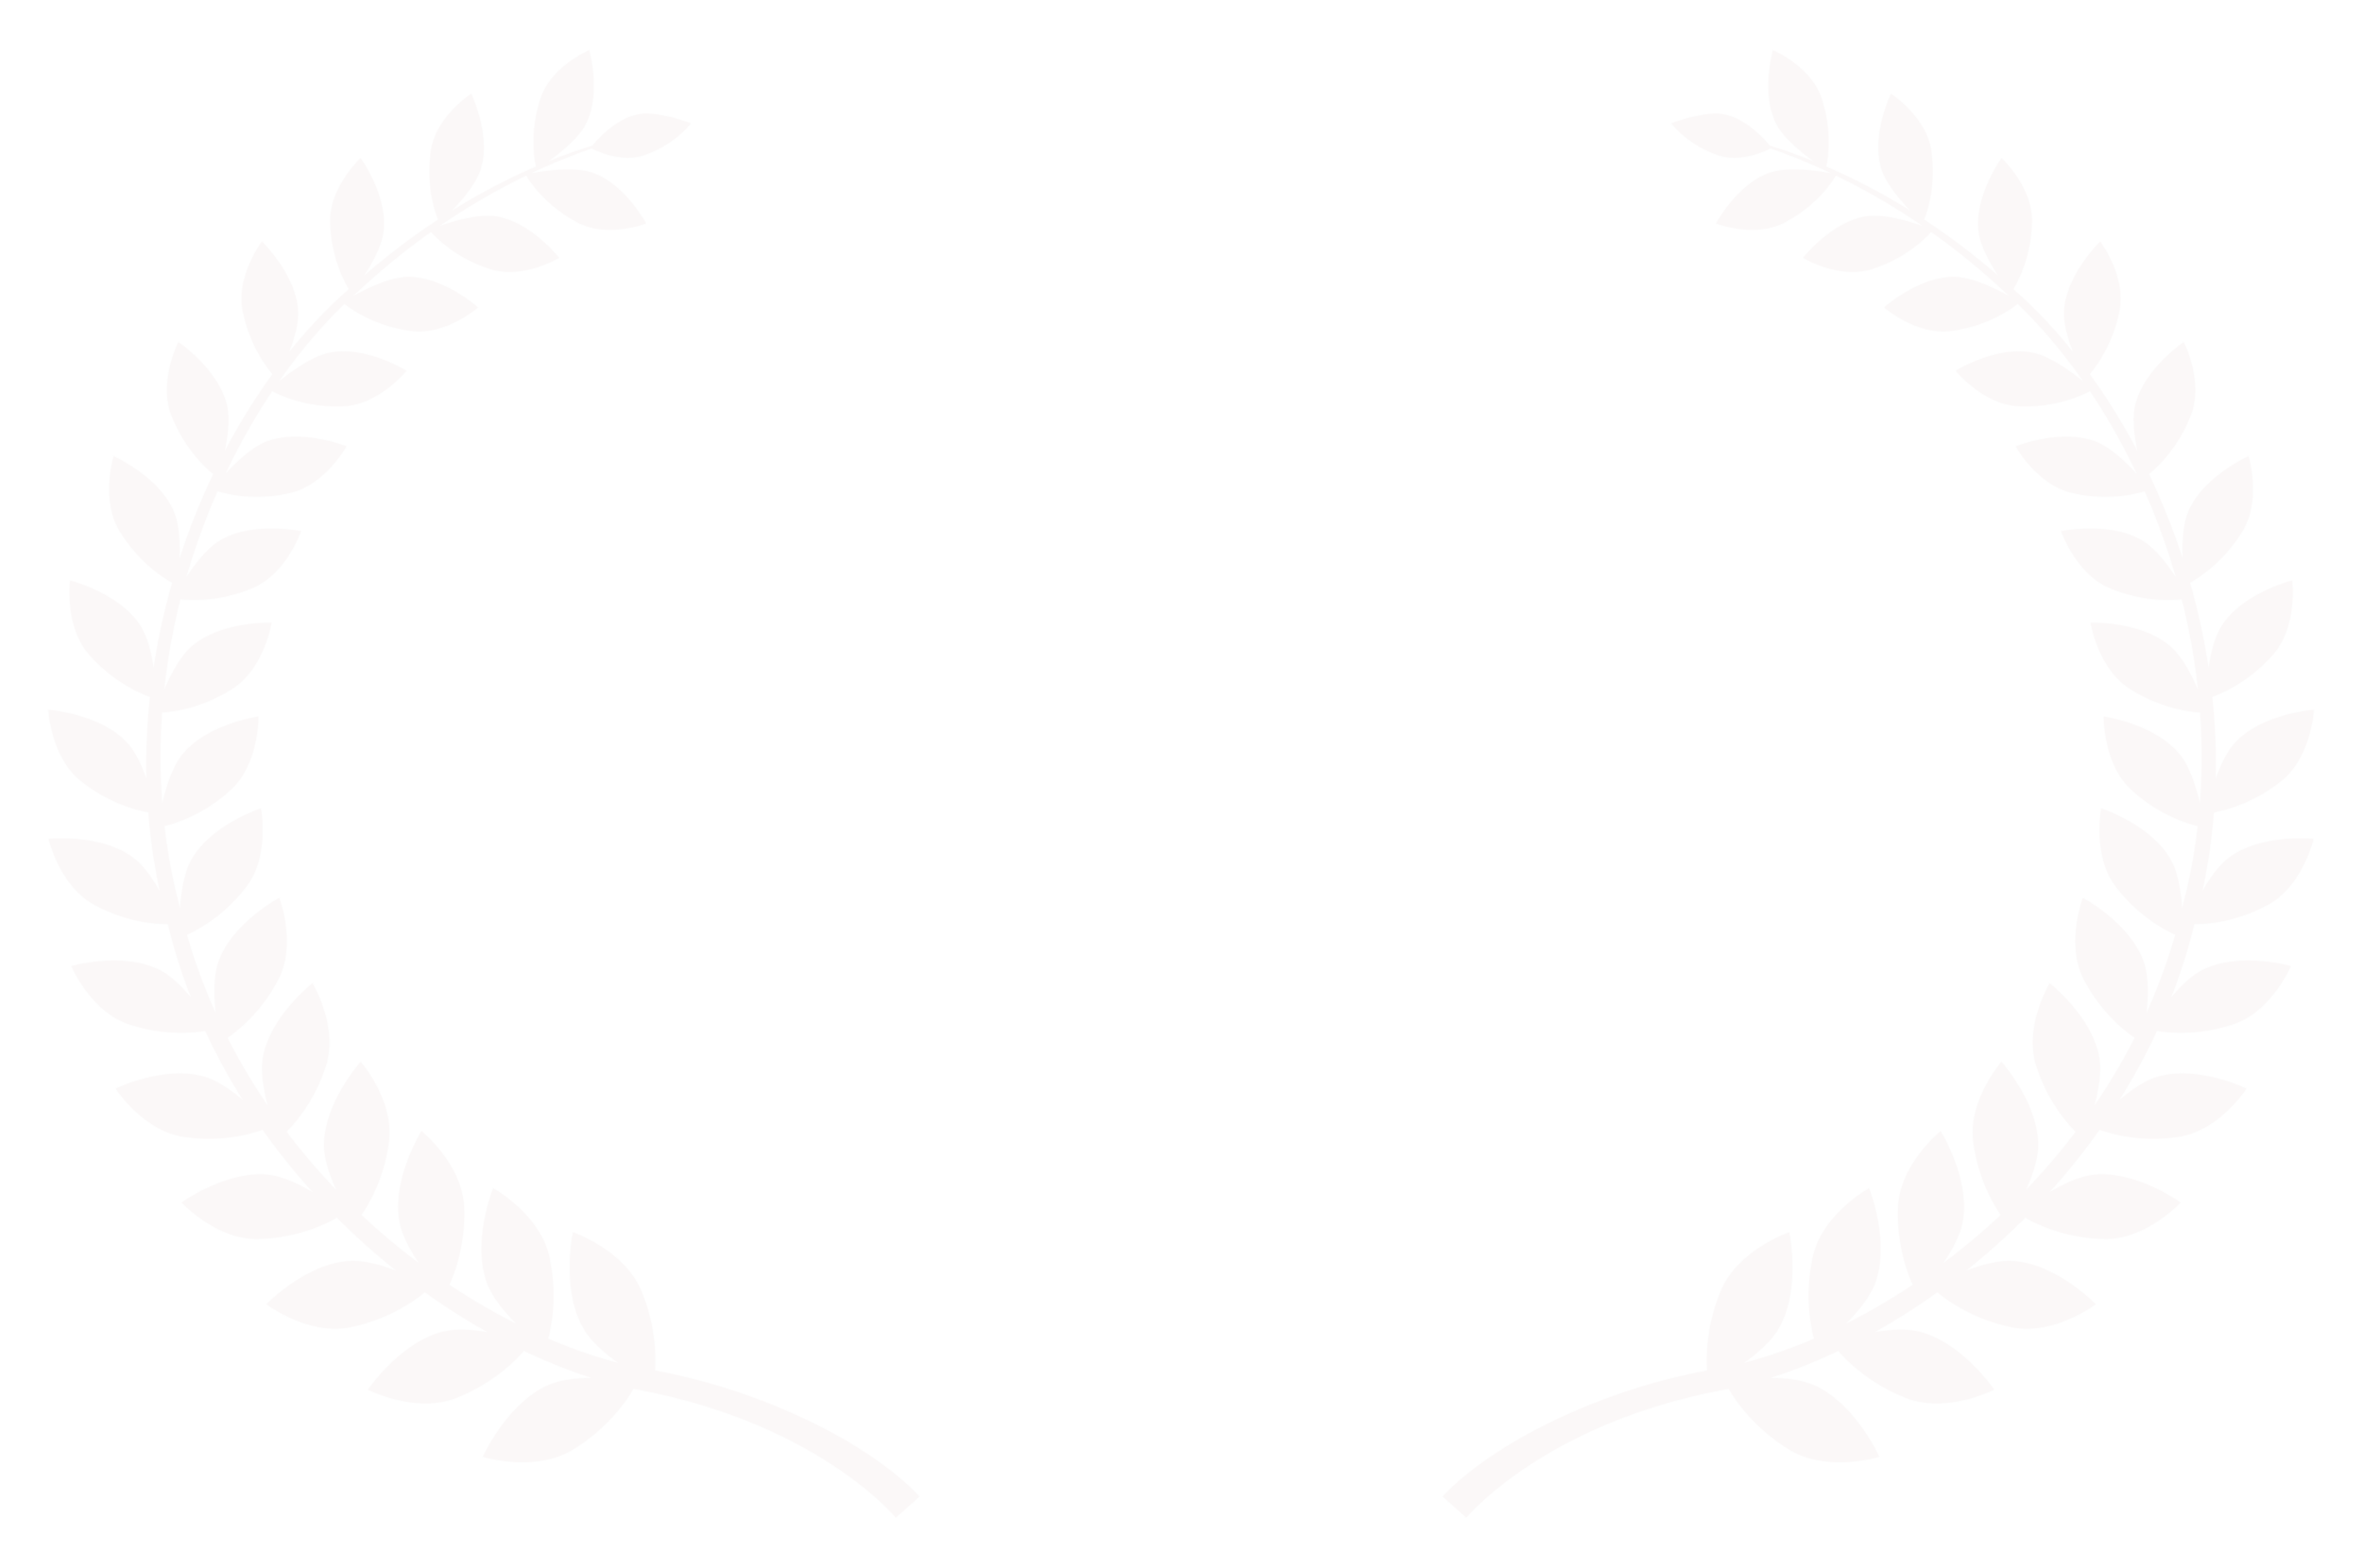 OFFICIALSELECTION-TheGoldenSkullInternationalFilmFestival-2018.png